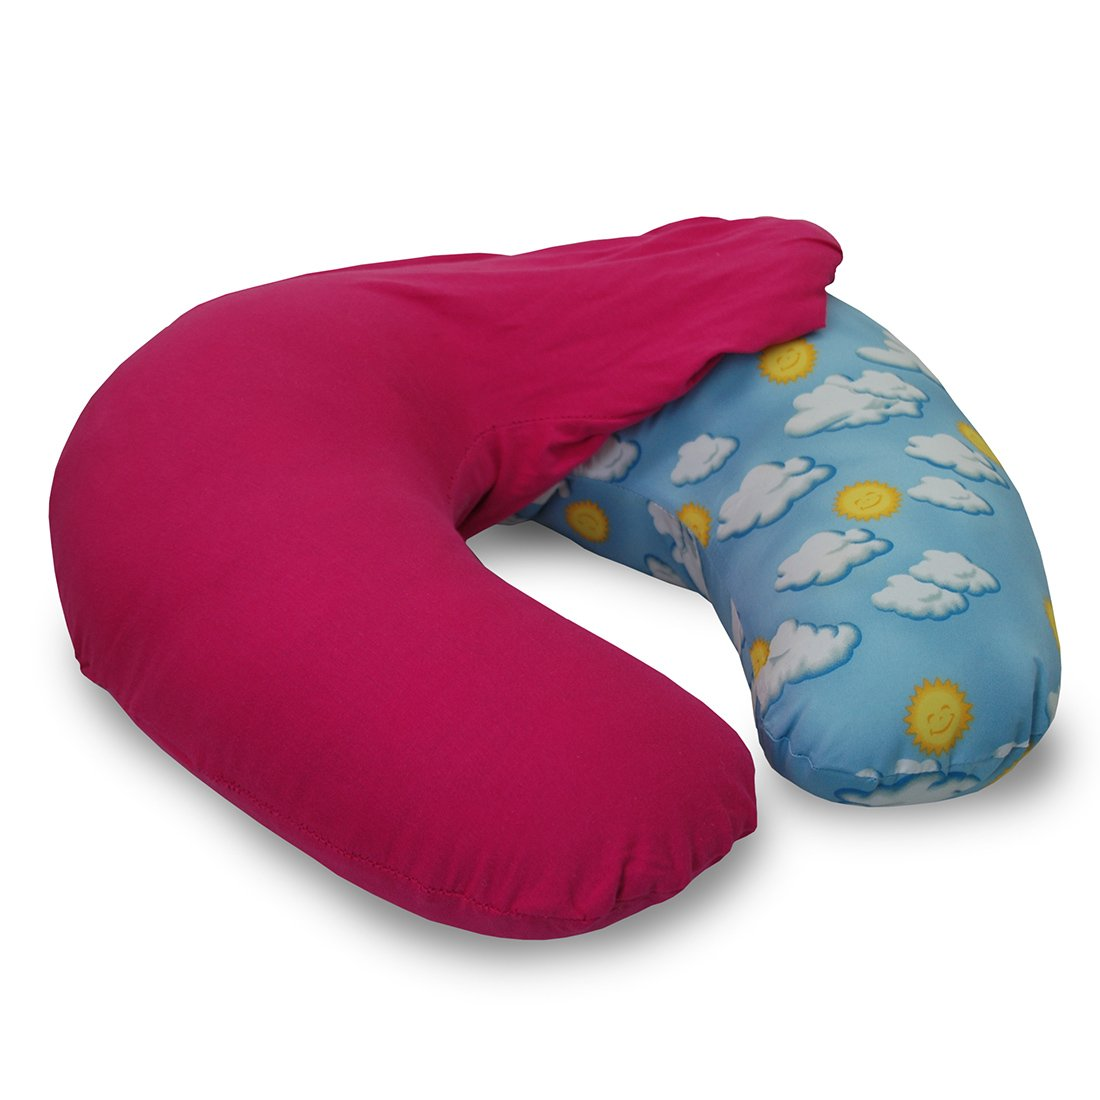 NurSit Nursing Pillow with Removable Pink Slipcover, Cloud Print by World's Best